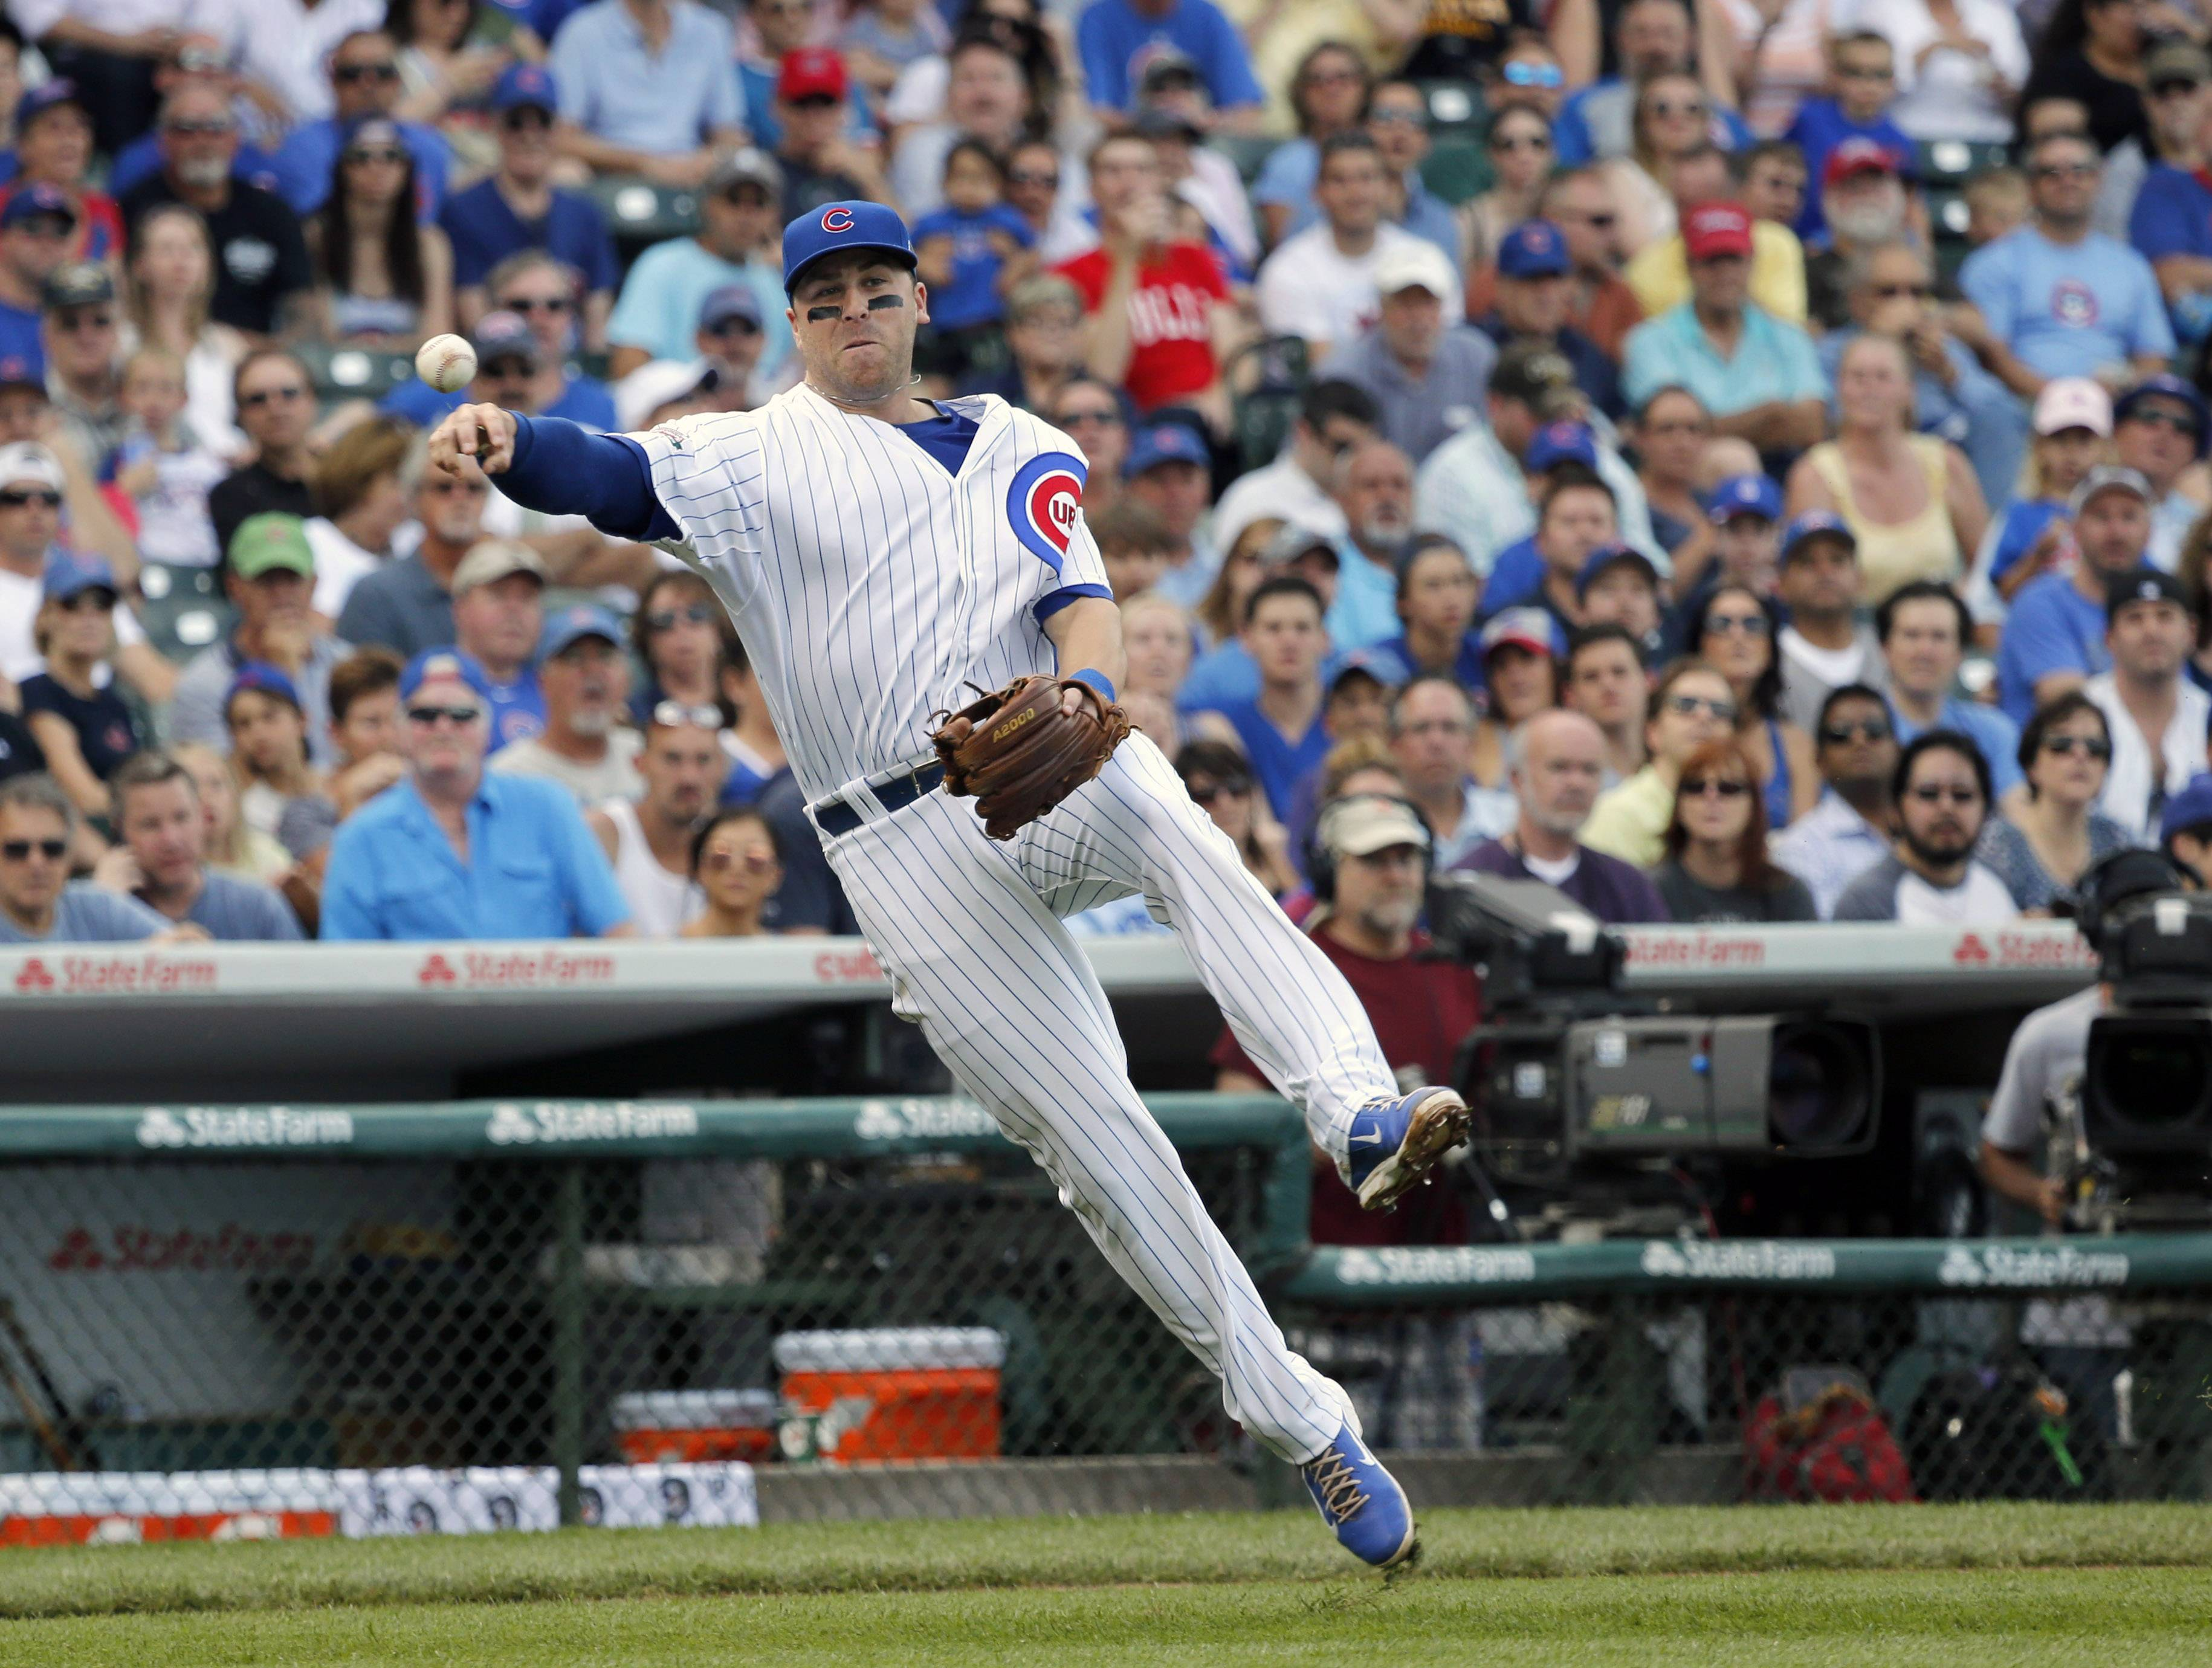 Chicago Cubs third baseman Mike Olt throws out Pittsburgh Pirates' Russell Martin after fielding Martin's sacrifice bunt during the second inning of a baseball game on Friday, June 20, 2014, in Chicago.